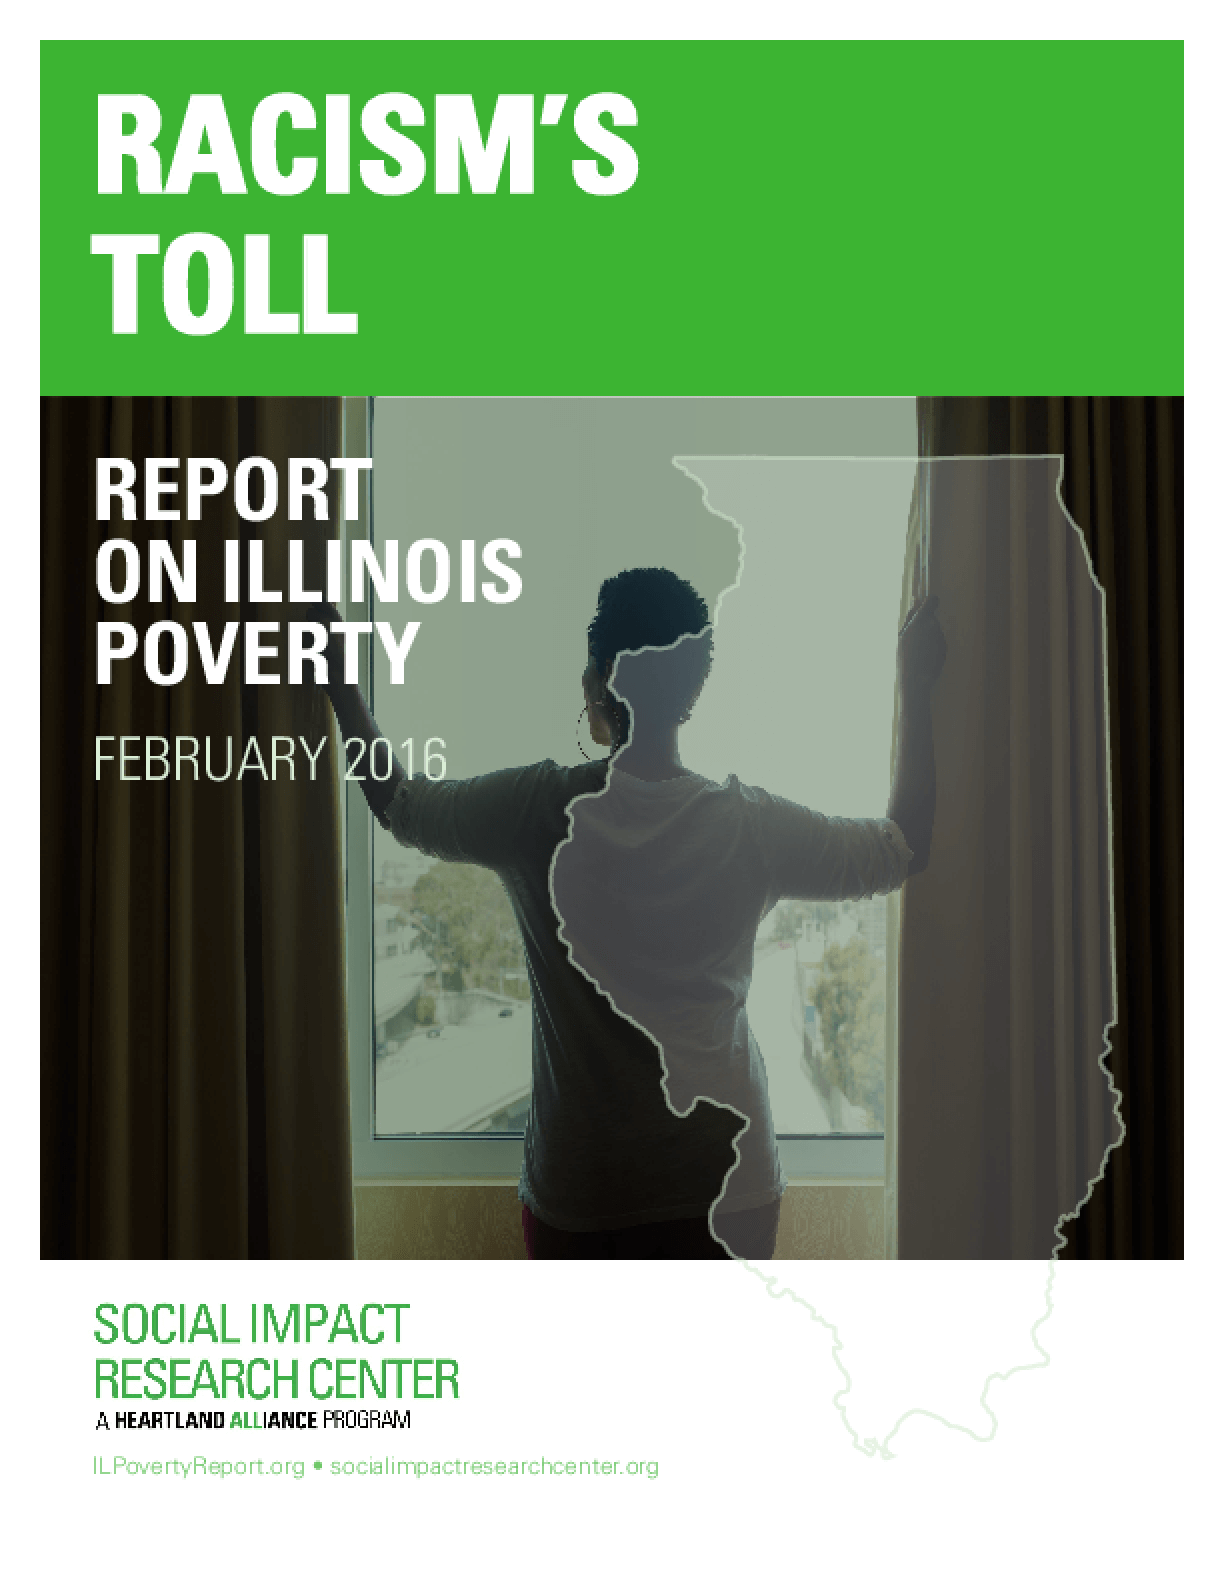 Racism's Toll: Report on Illinois Poverty